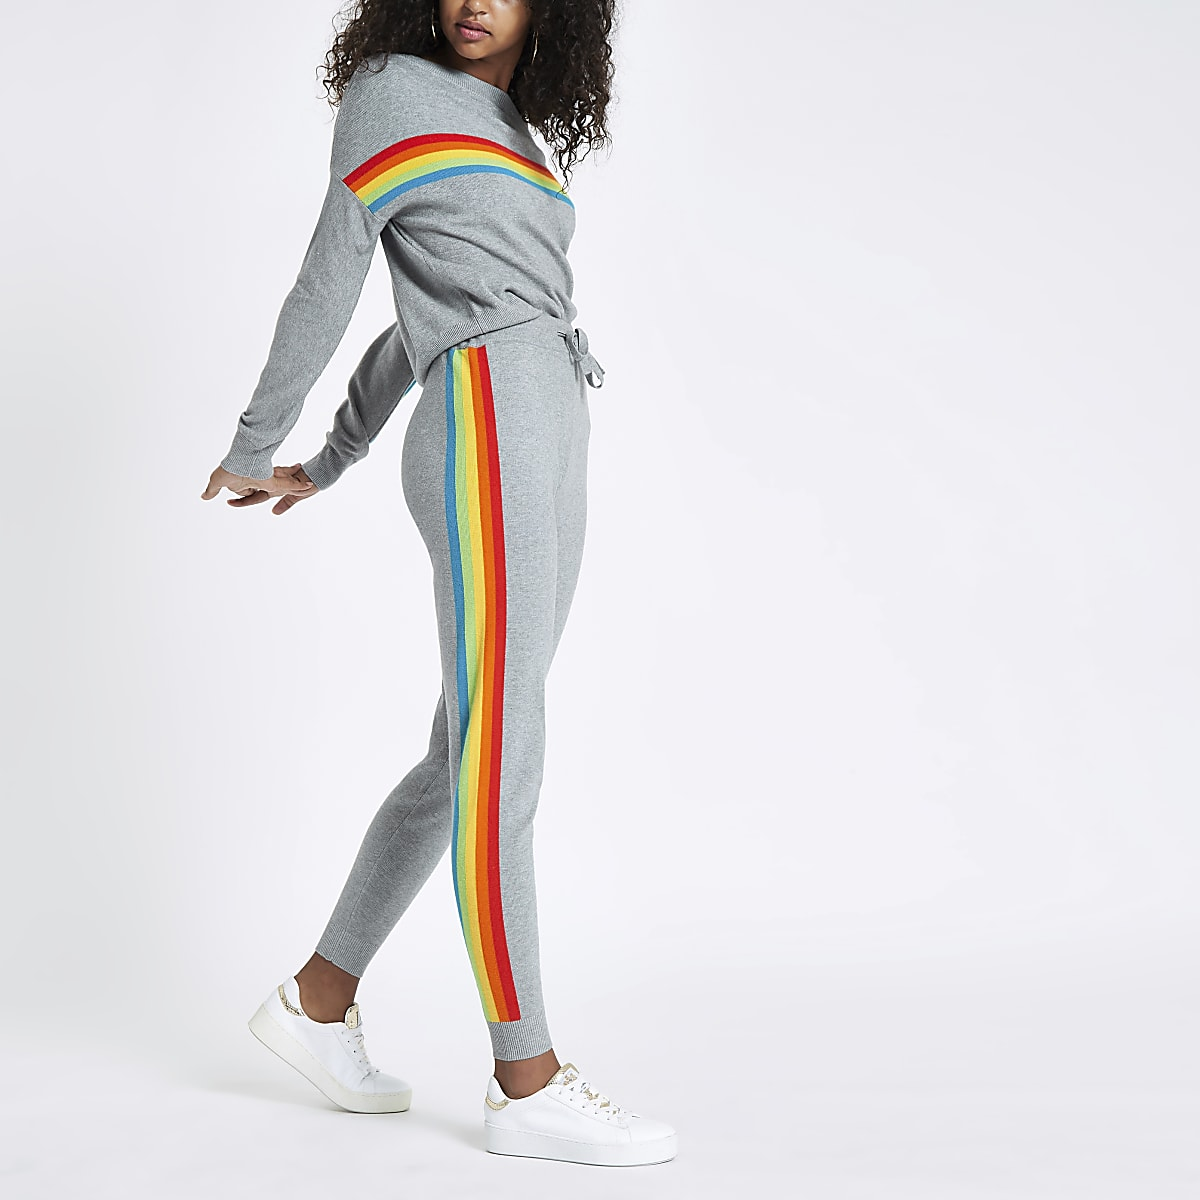 e050ca173cd854 Grey knit rainbow stripe sweatshirt - Jumpers - Knitwear - women